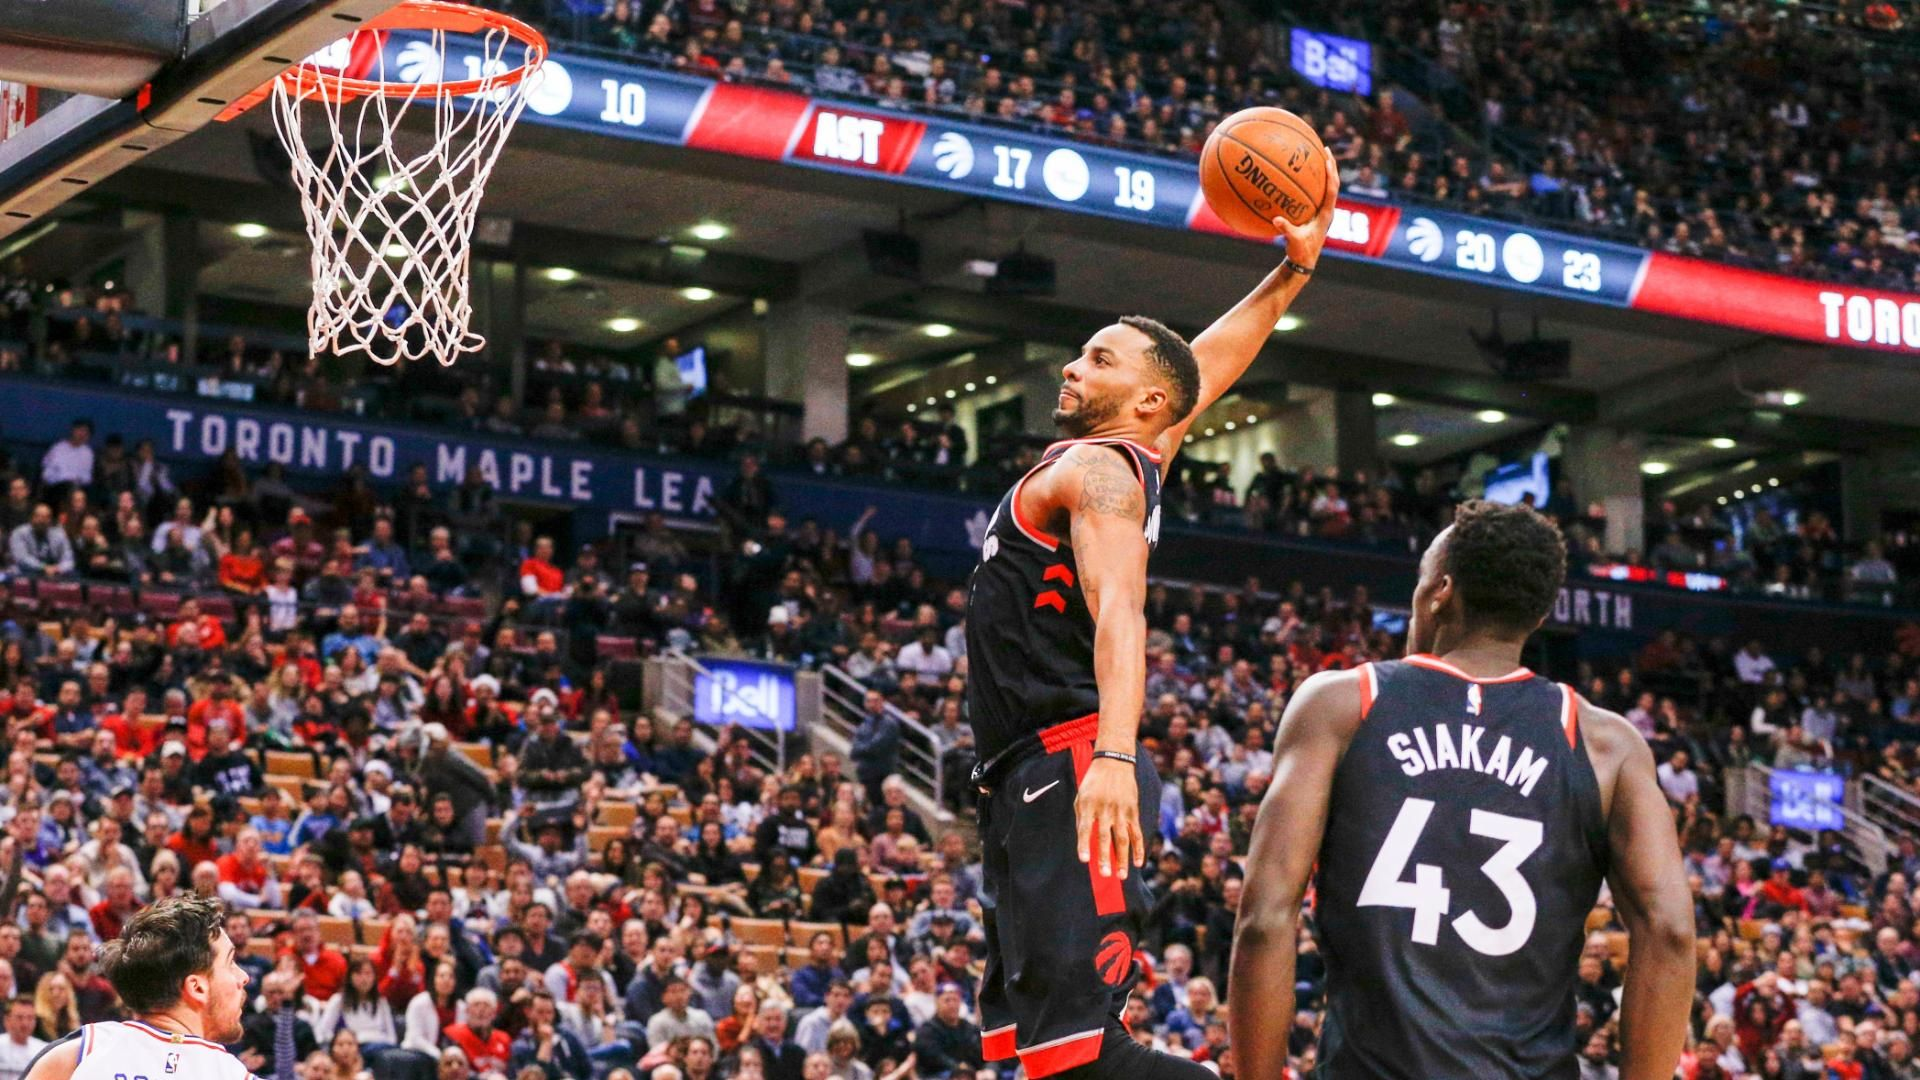 https://secure.espncdn.com/combiner/i?img=/media/motion/2017/1224/dm_171223_Powell_brings_the_house_down_with_dunk89/dm_171223_Powell_brings_the_house_down_with_dunk89.jpg